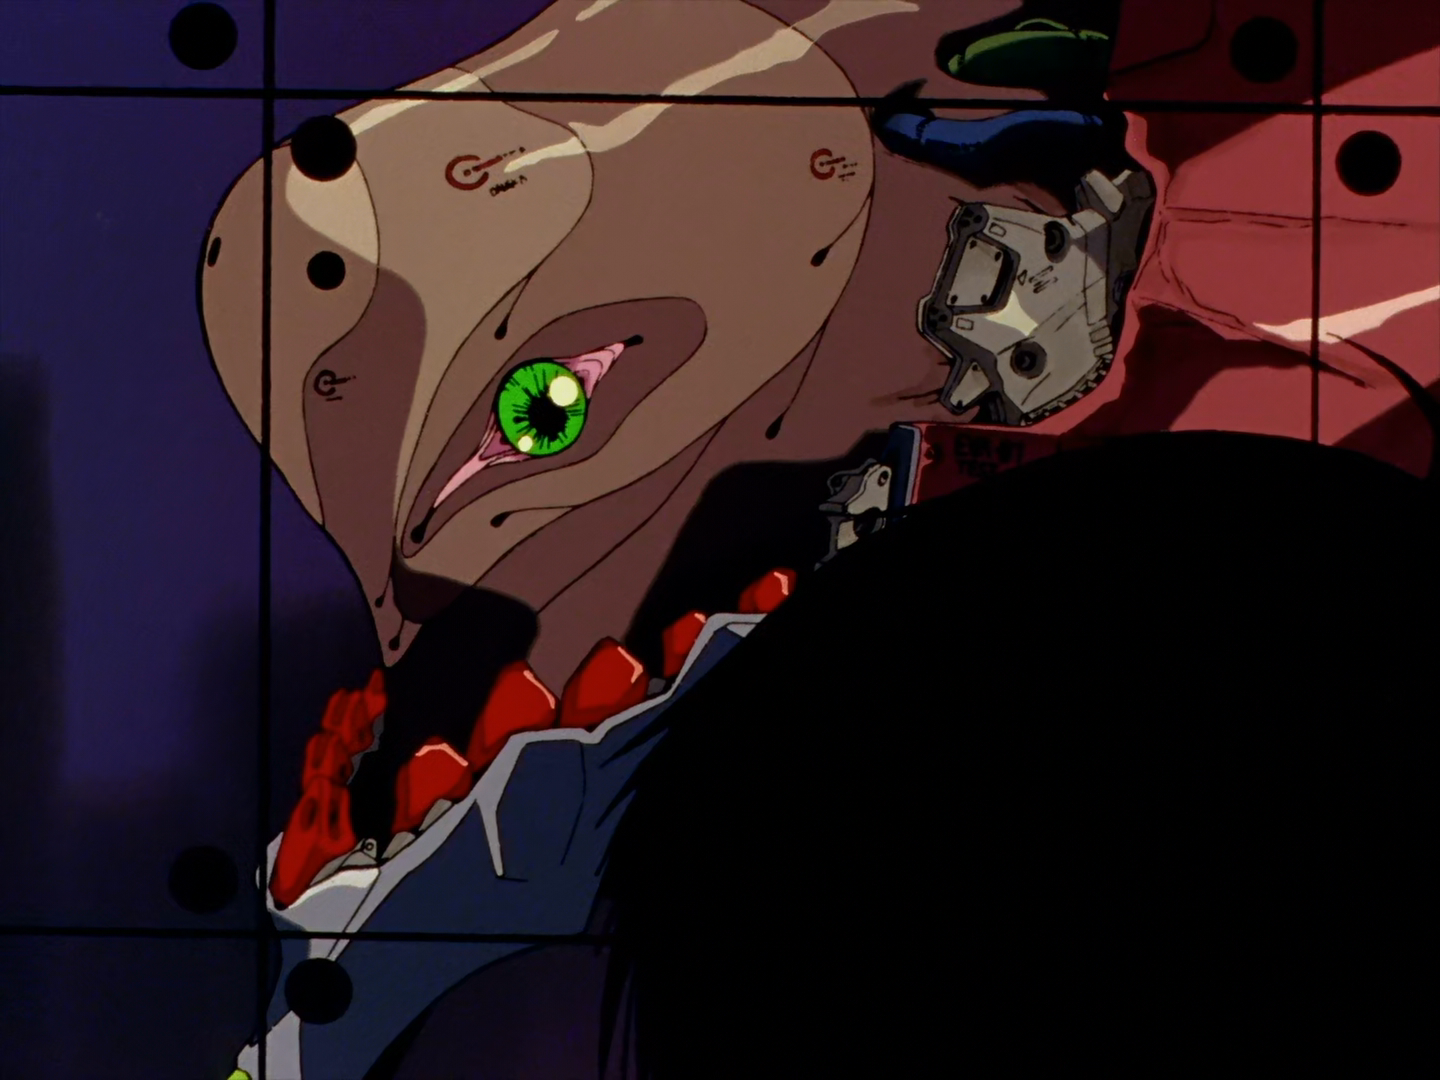 File:Evangelion ep2.png